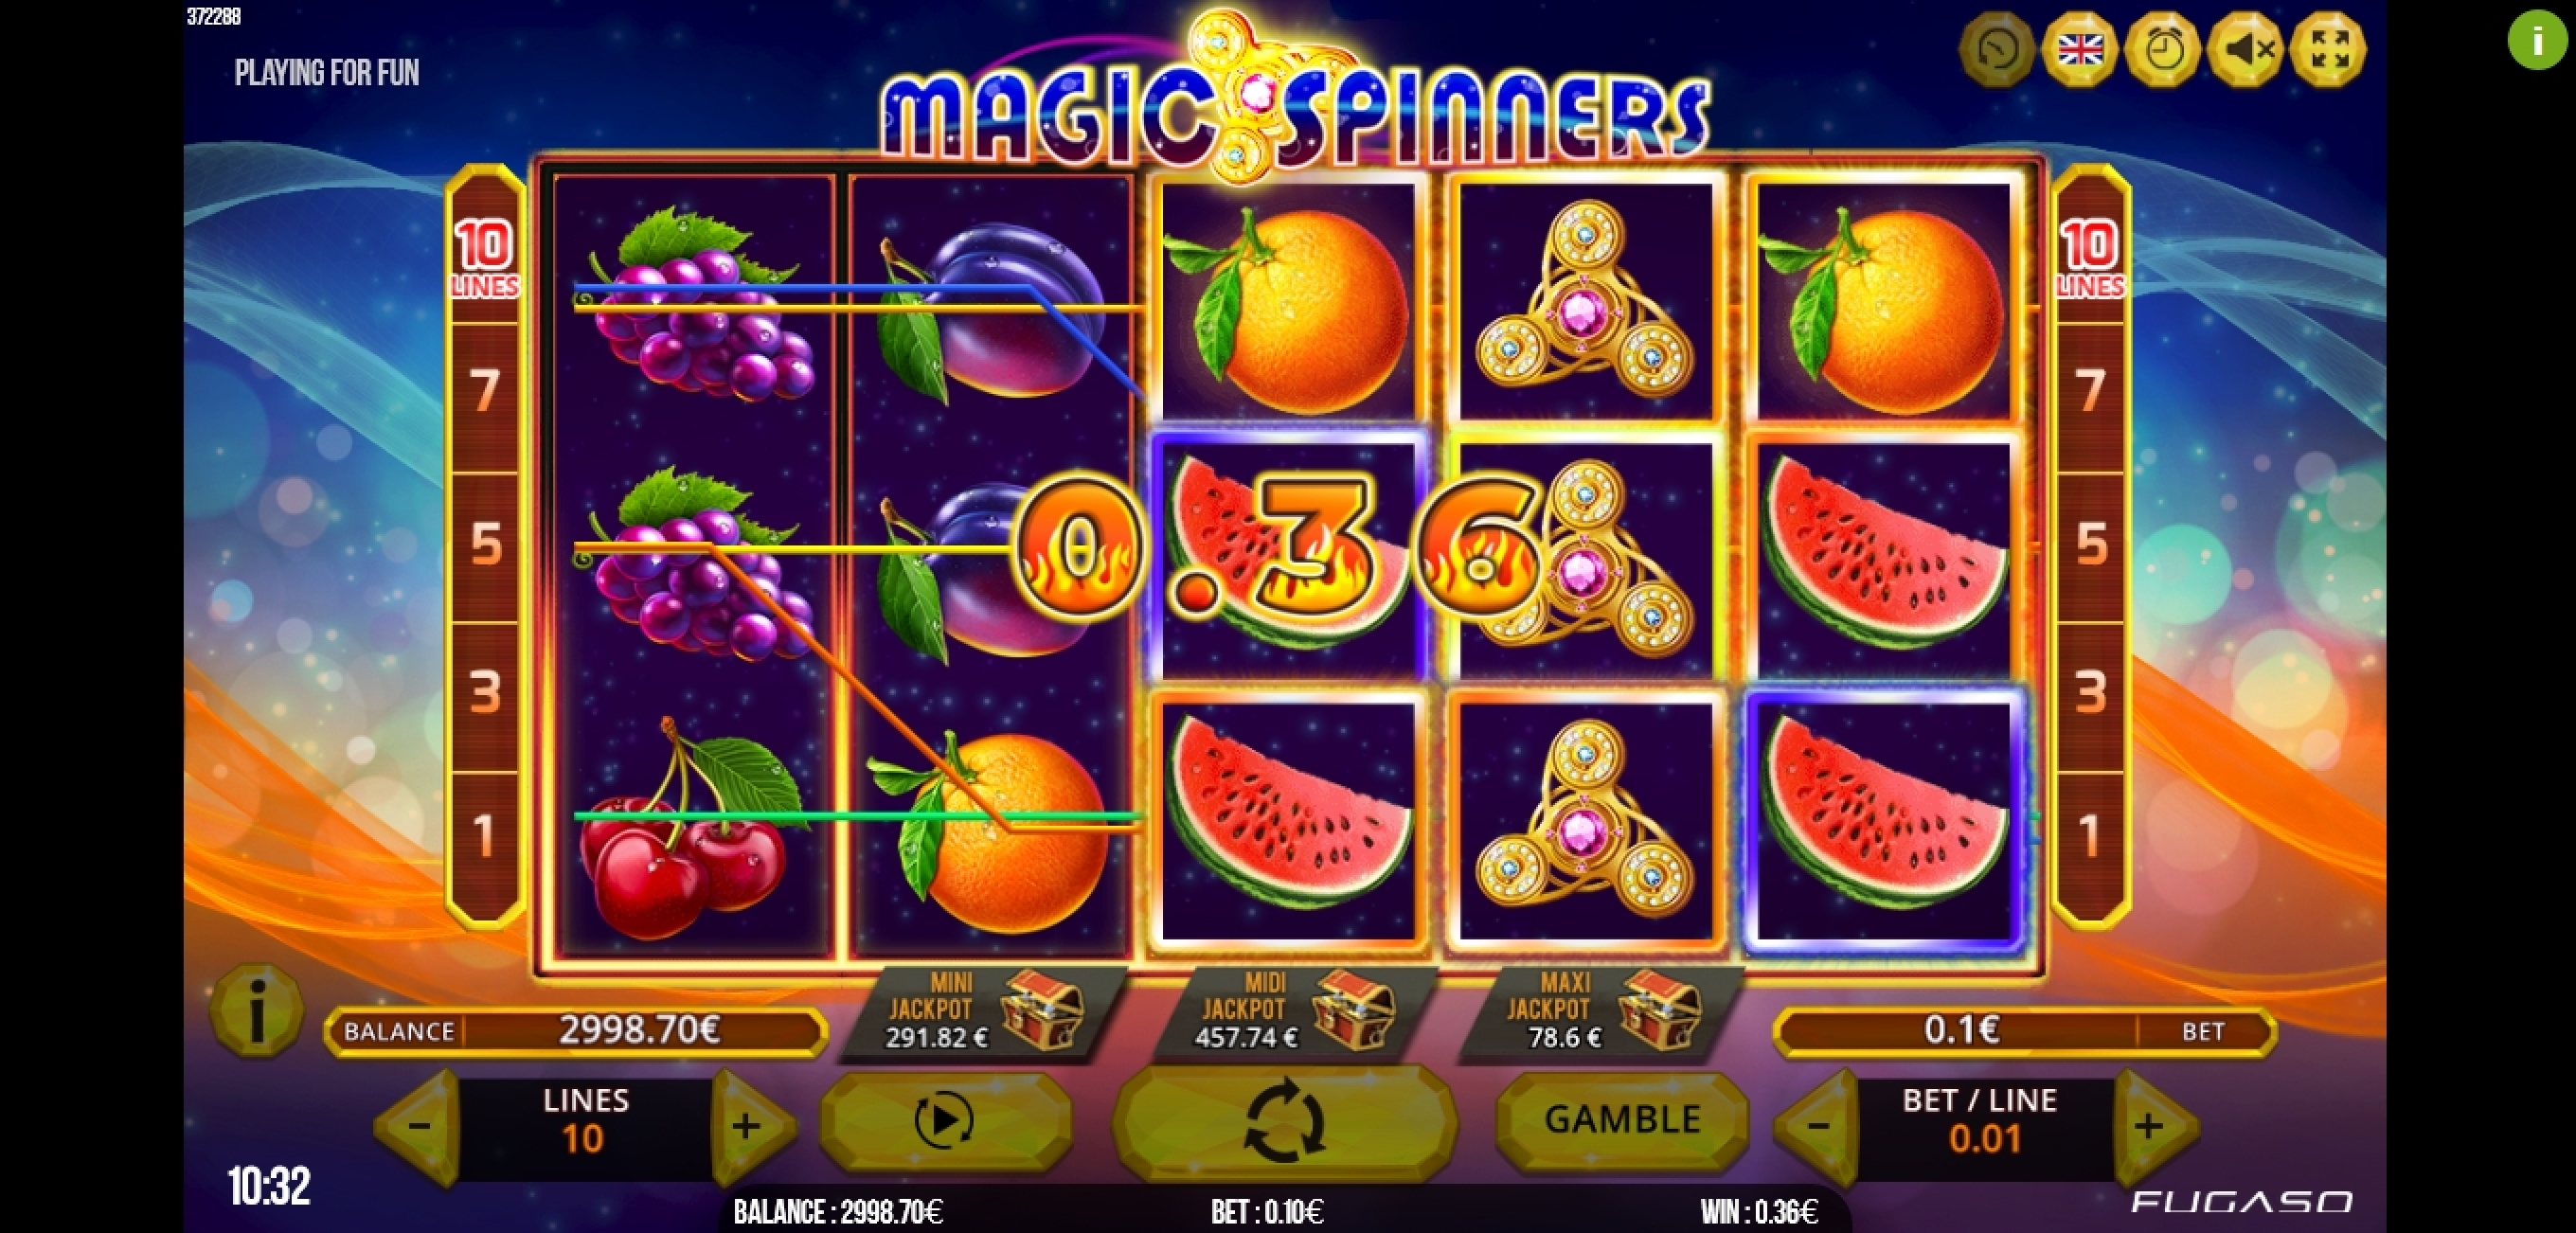 Win Money in Magic Spinners Free Slot Game by Fugaso